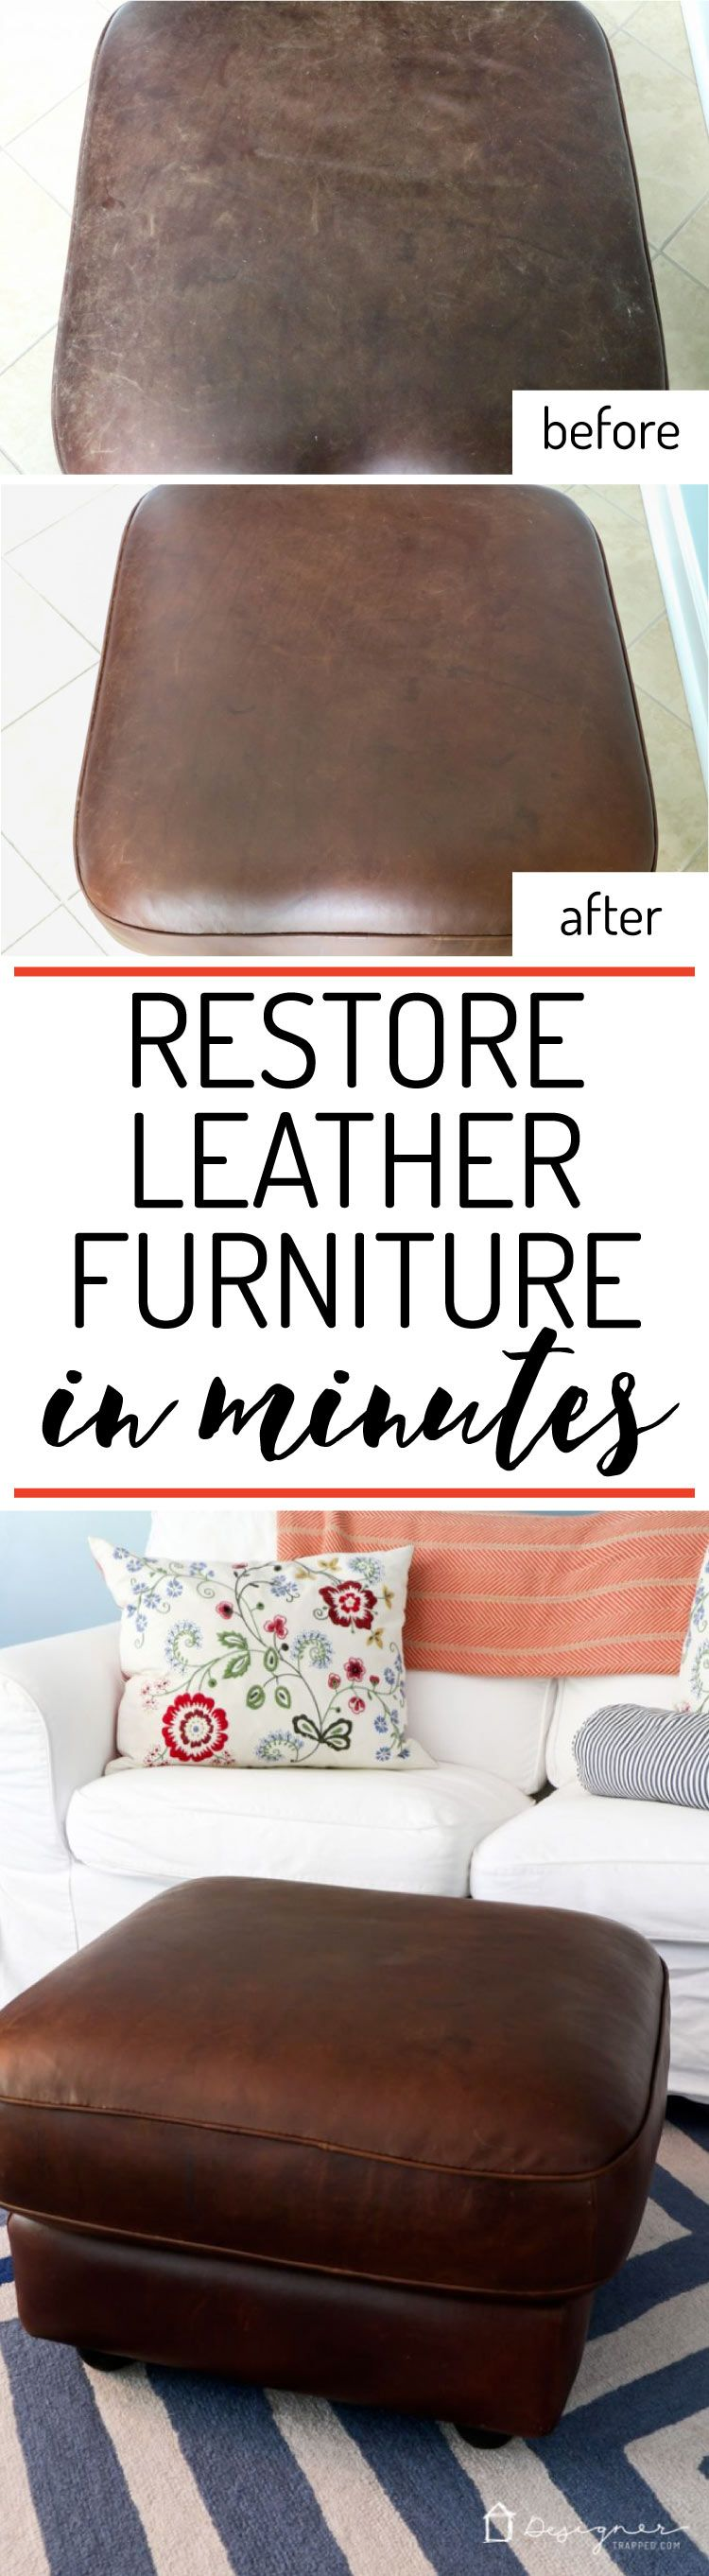 Learn How to Restore Leather Furniture